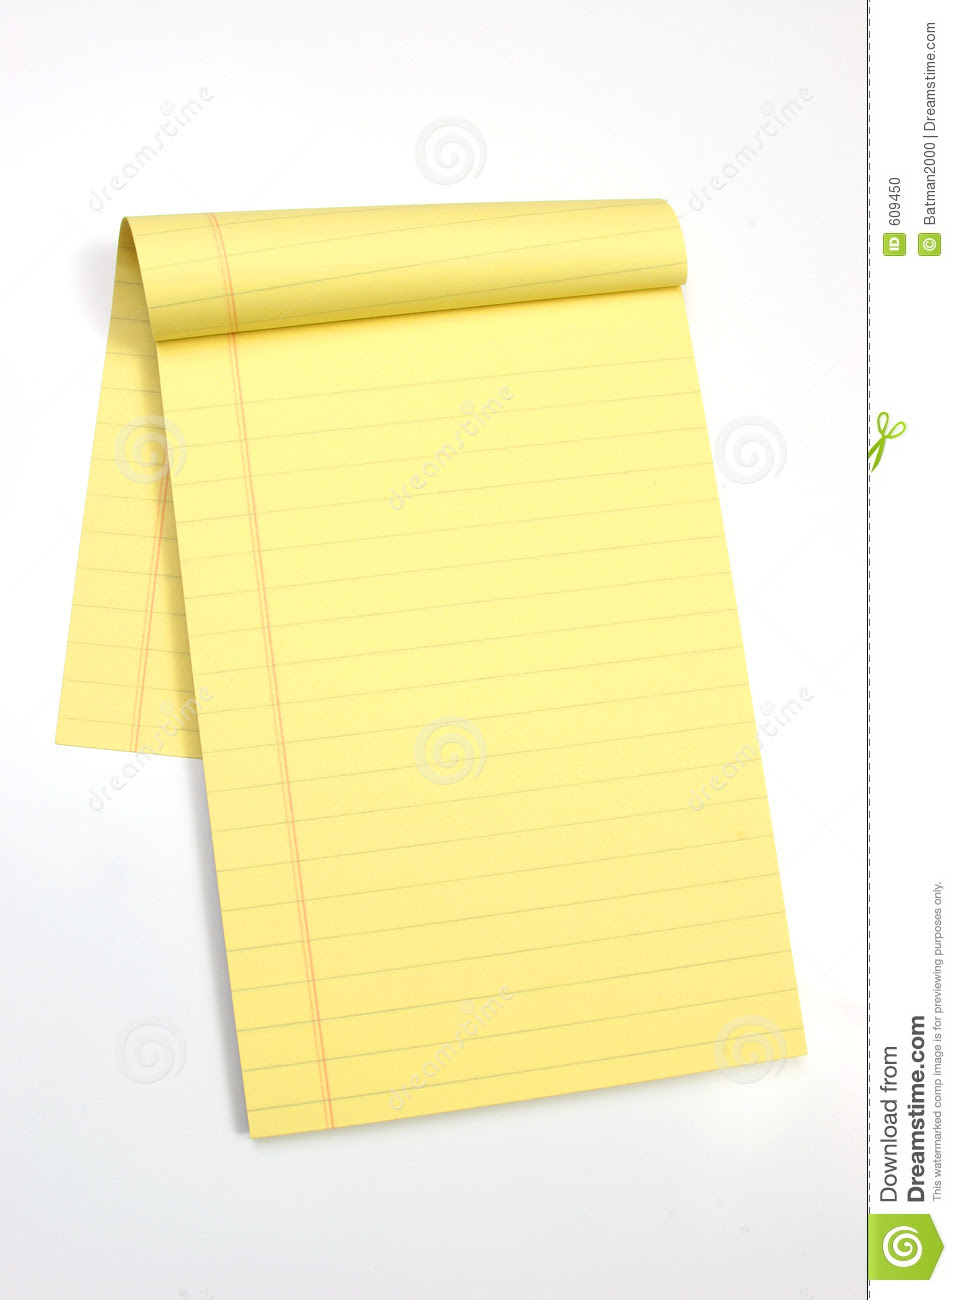 Blank Yellow Pages Vertical Stock Photo - Image: 609450